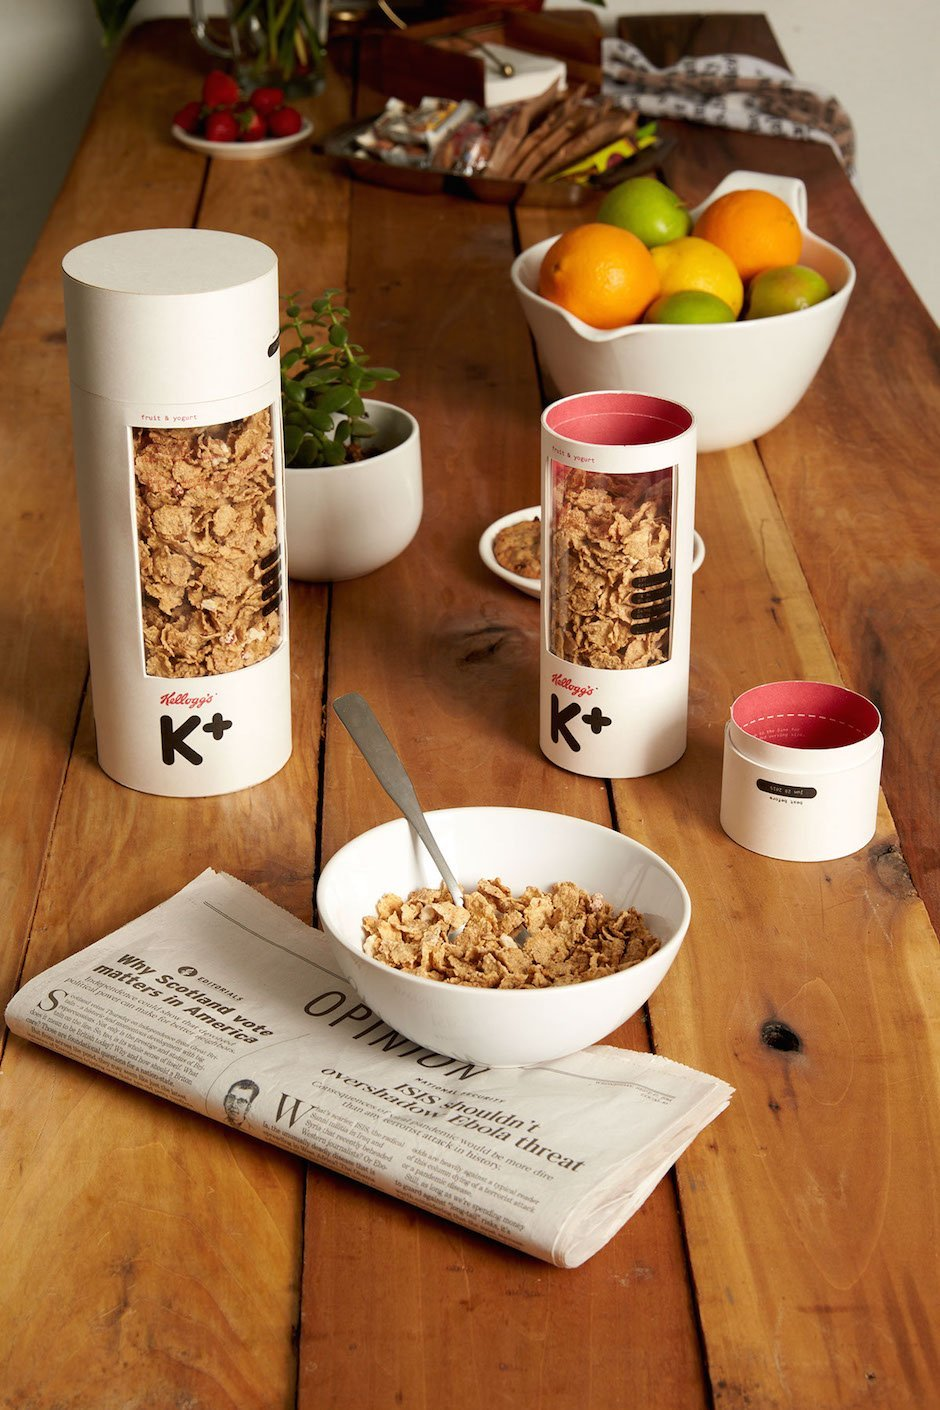 kelloggs-special-k-verpackung-redesign